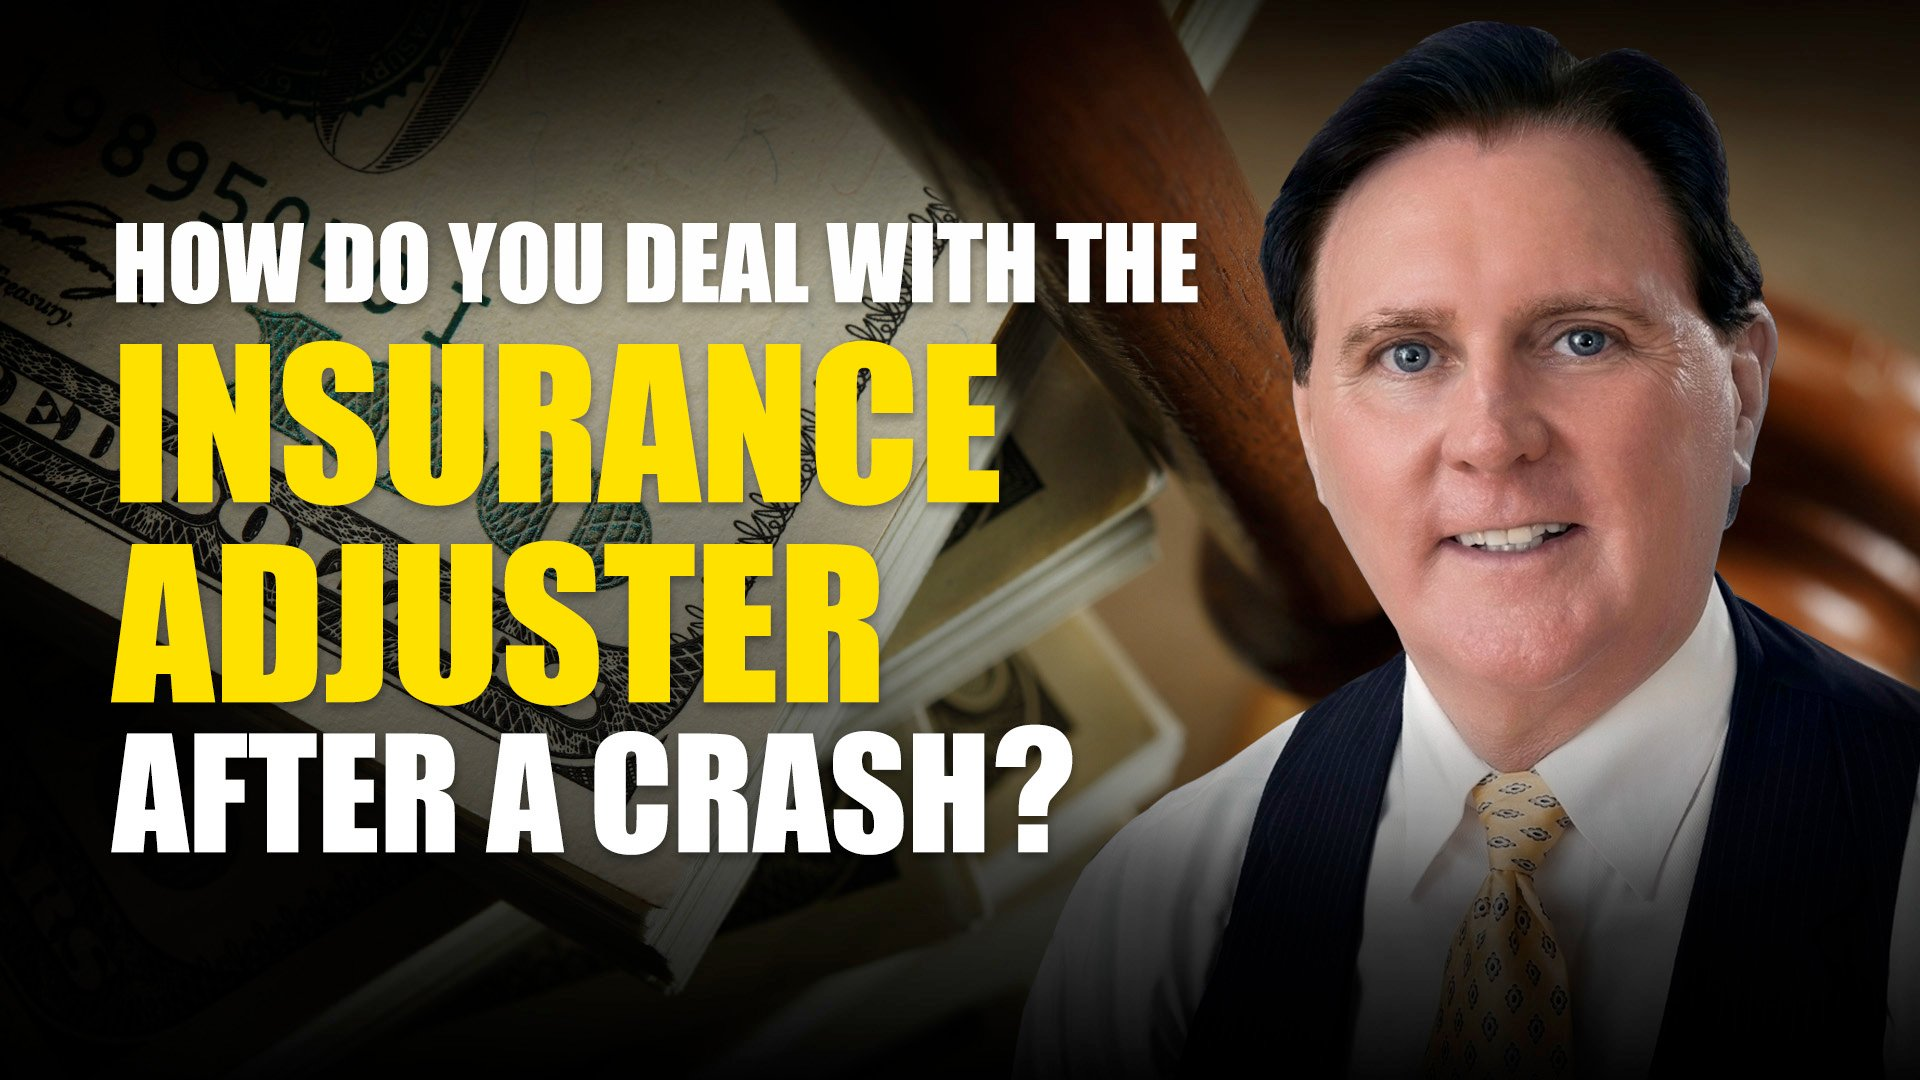 How Do You Deal With The Insurance Adjuster After A Crash?